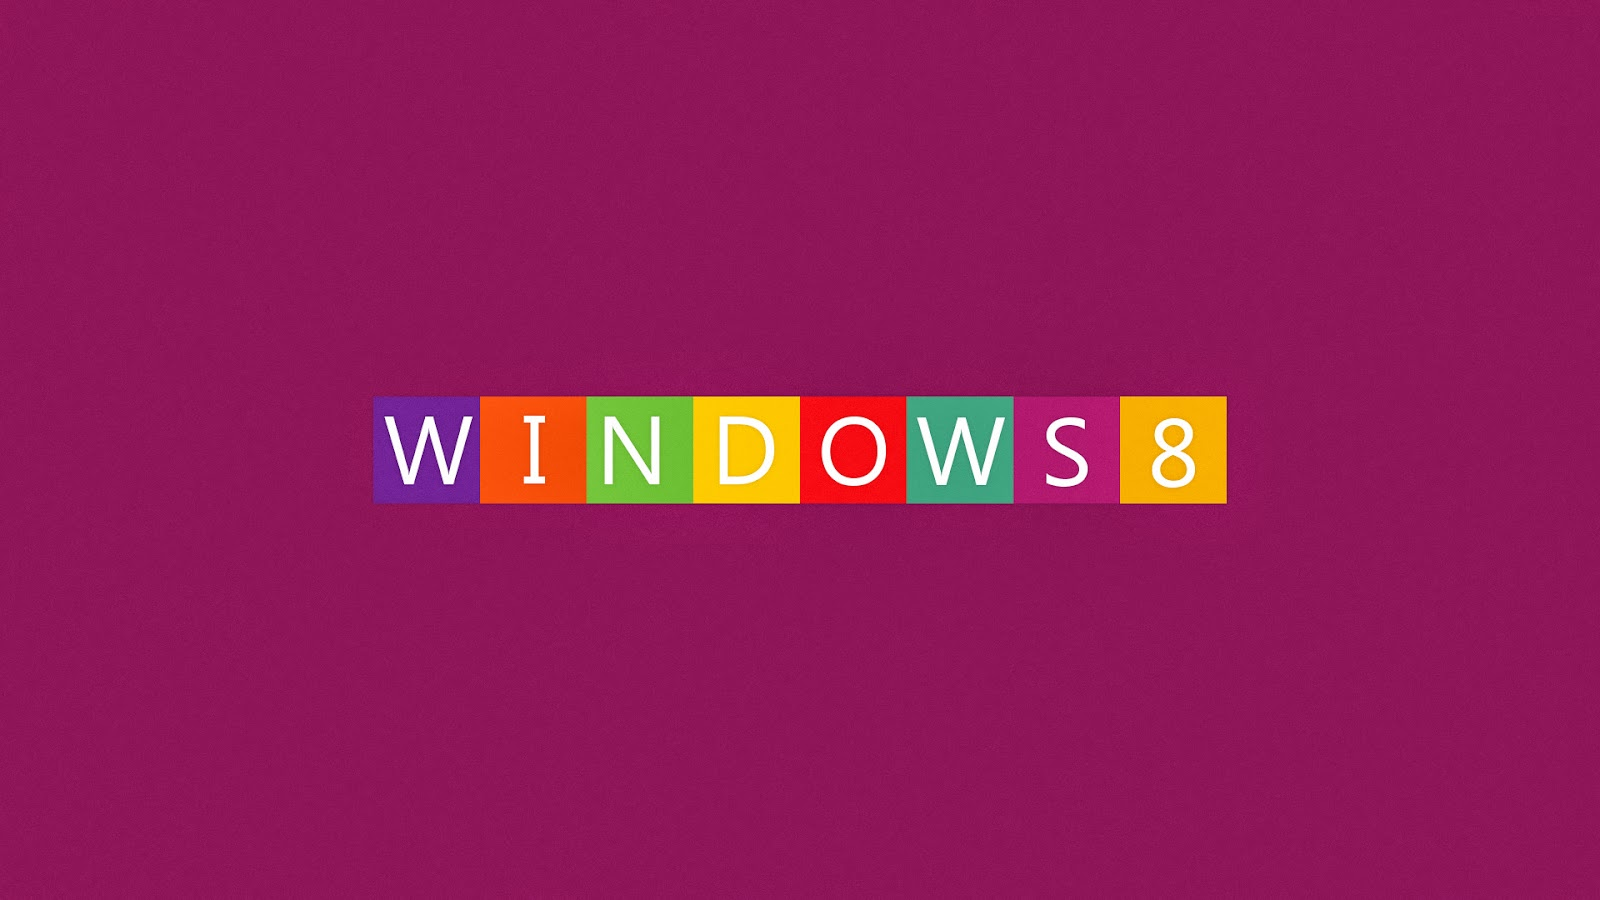 Windows 8 desktopmotive